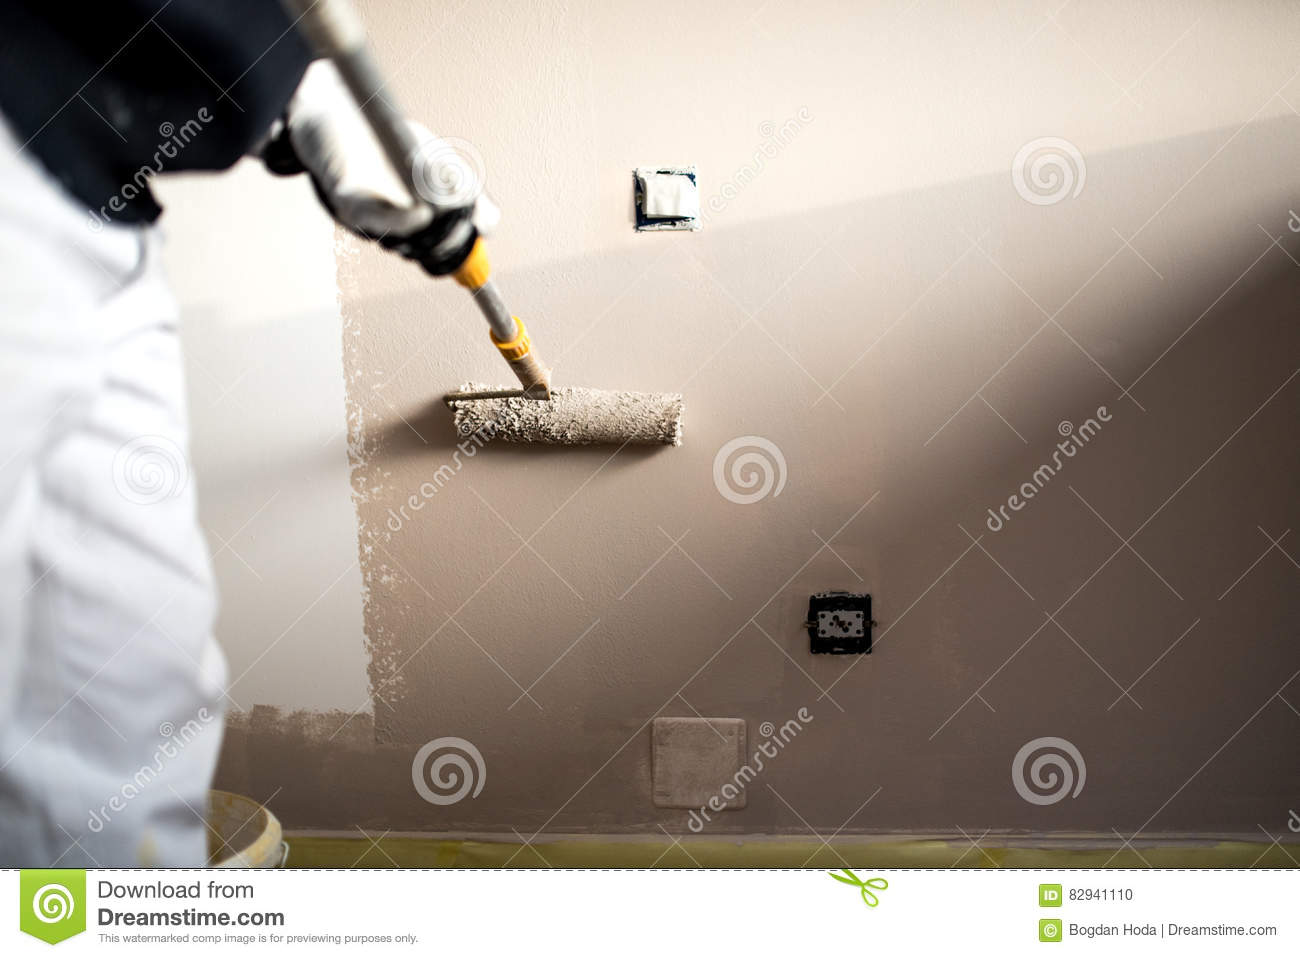 Man decorating walls with paint. Construction plaster worker painting and renovating with professional tools